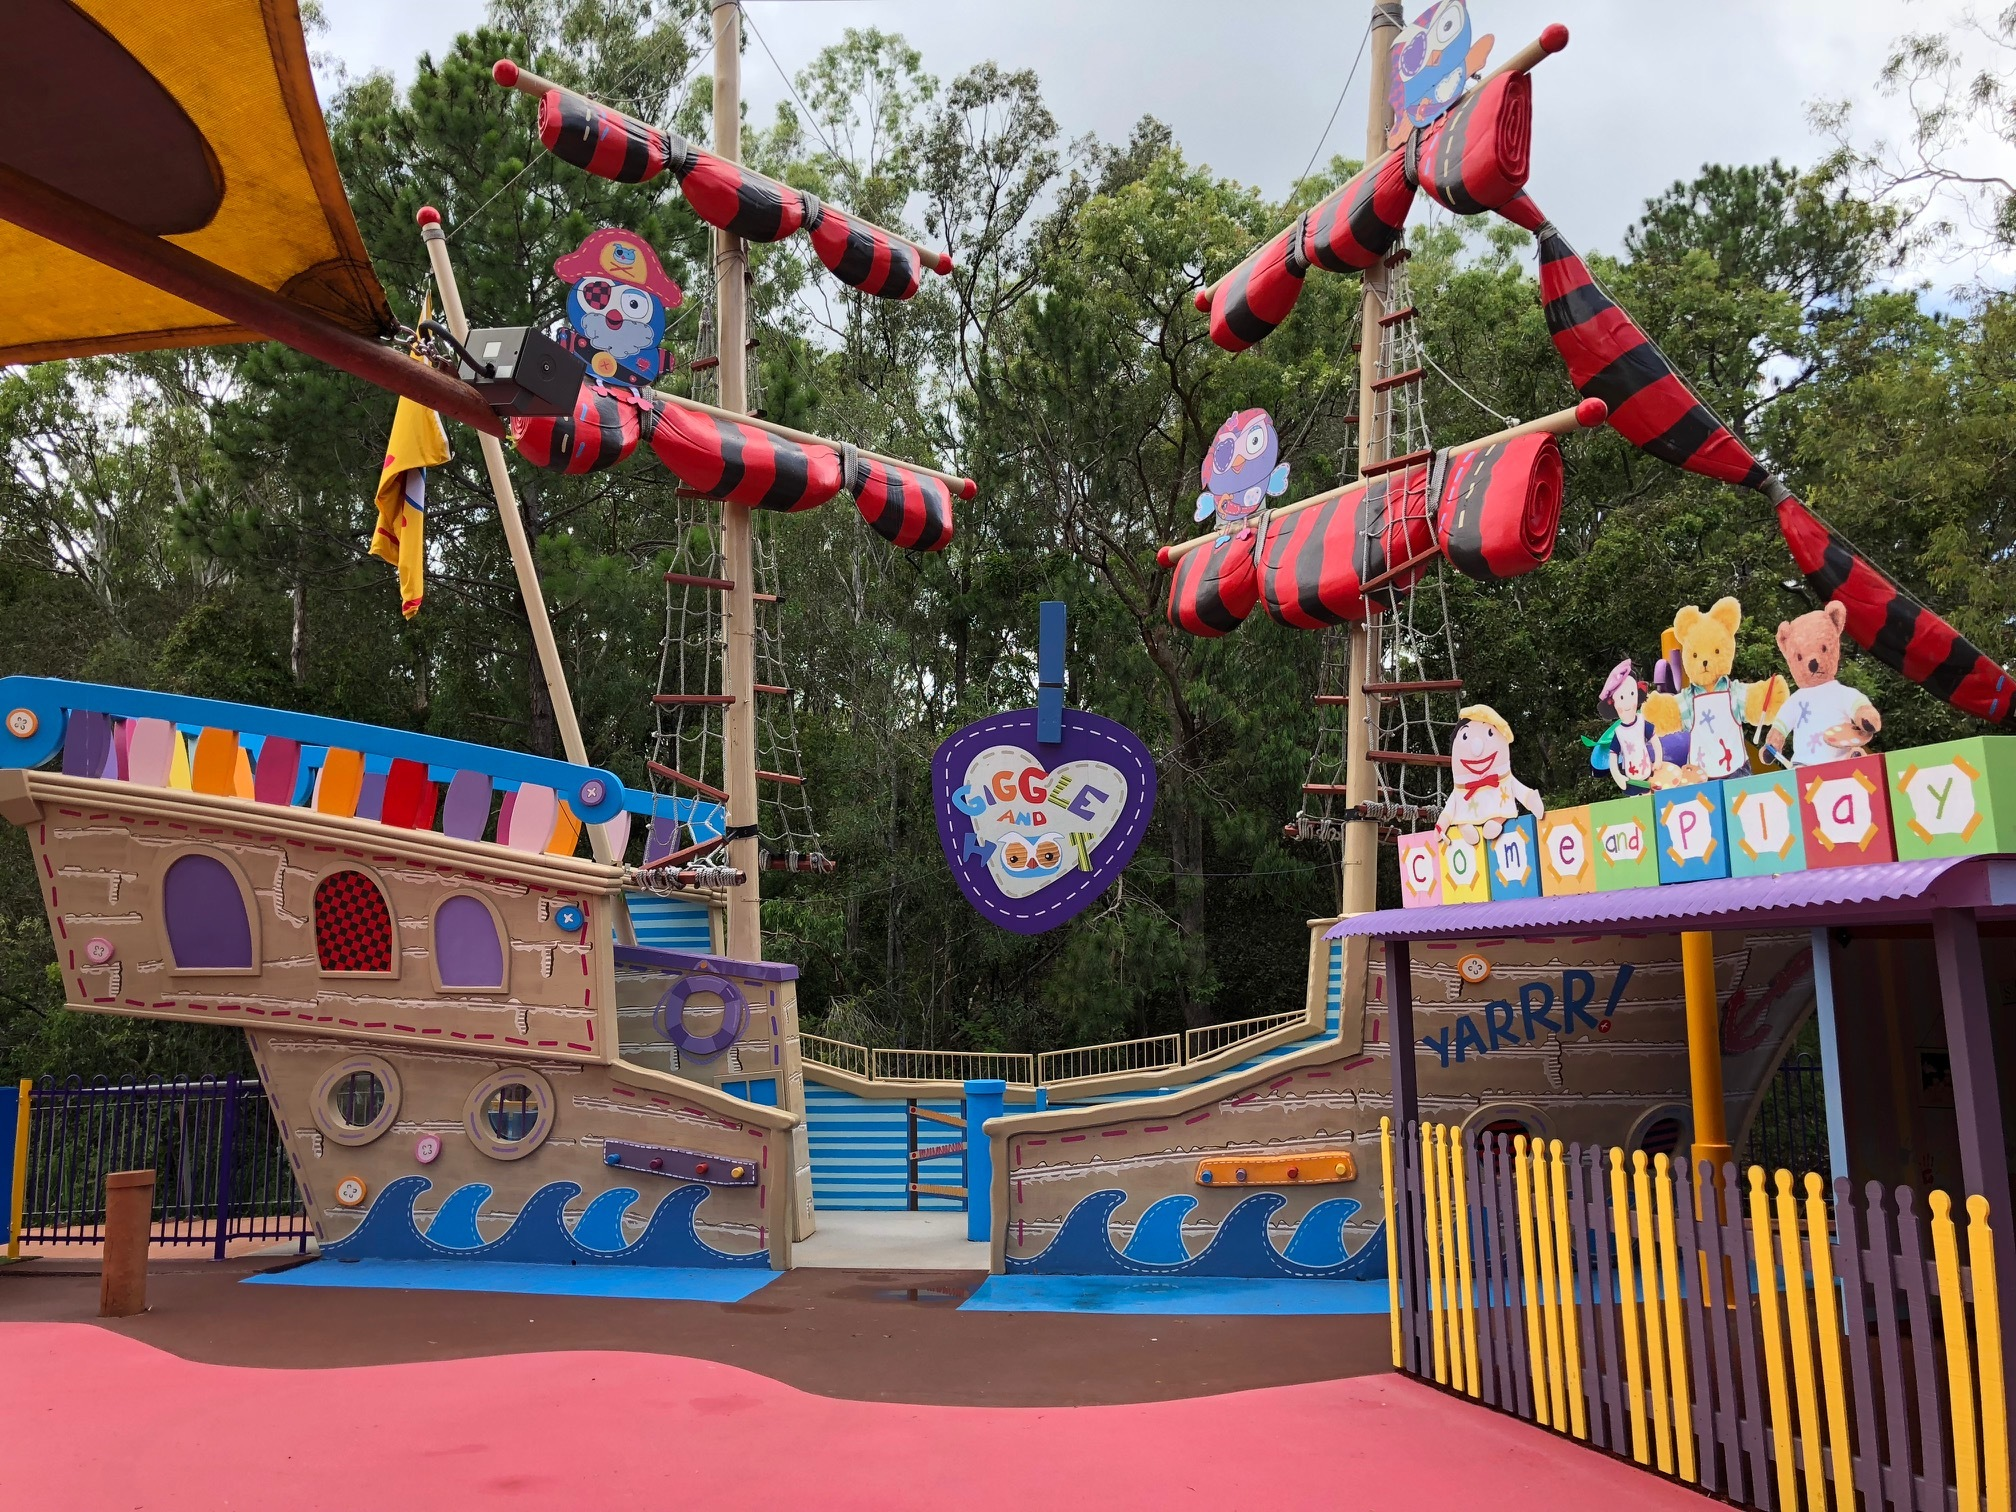 The parents guide to taking young children to dreamworld gold coast dreamworld gold coast things to do gold coast gold coast with young children gumiabroncs Choice Image